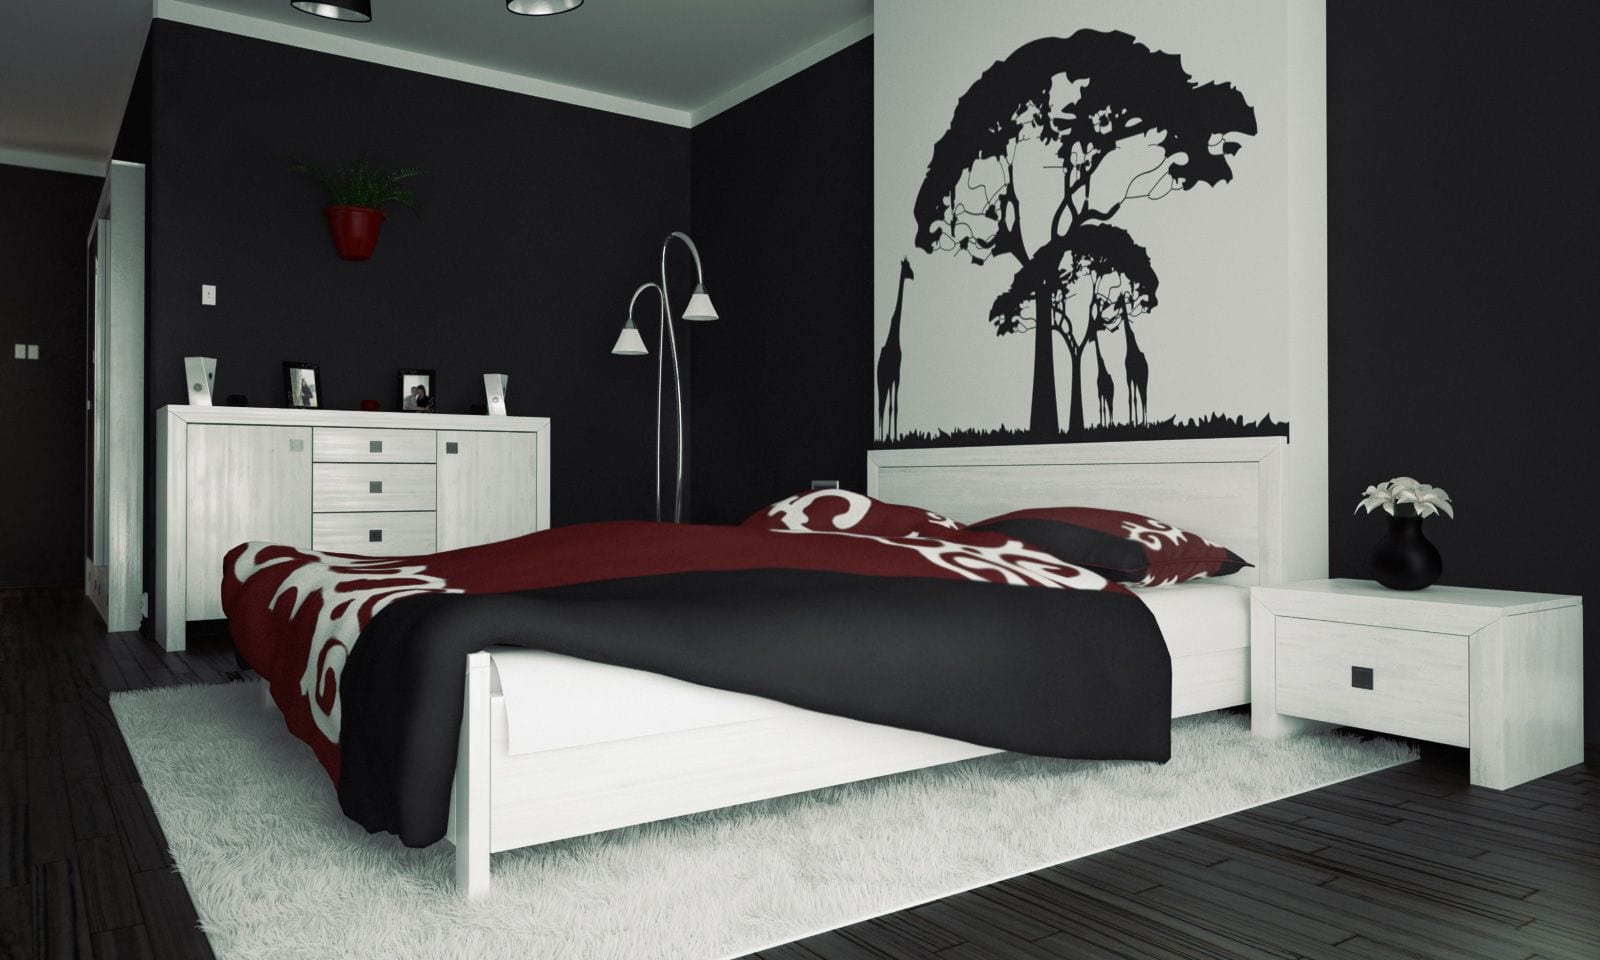 Schwarze w nde 48 wohnideen f r moderne raumgestaltung freshouse for Black bedroom ideas pinterest